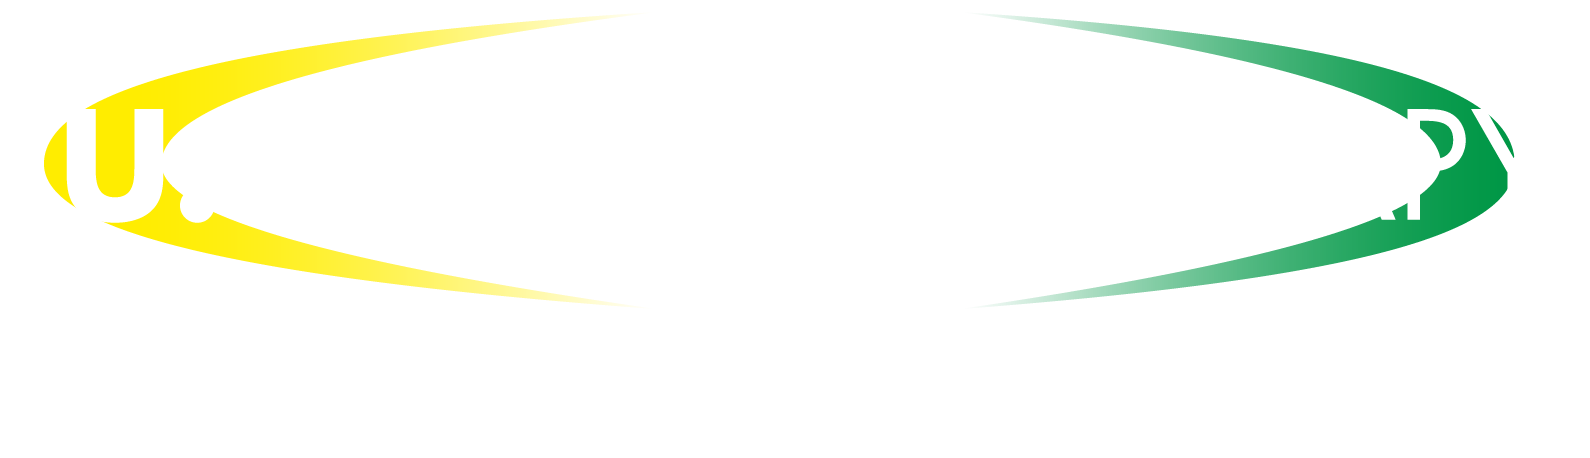 US Sports Therapy